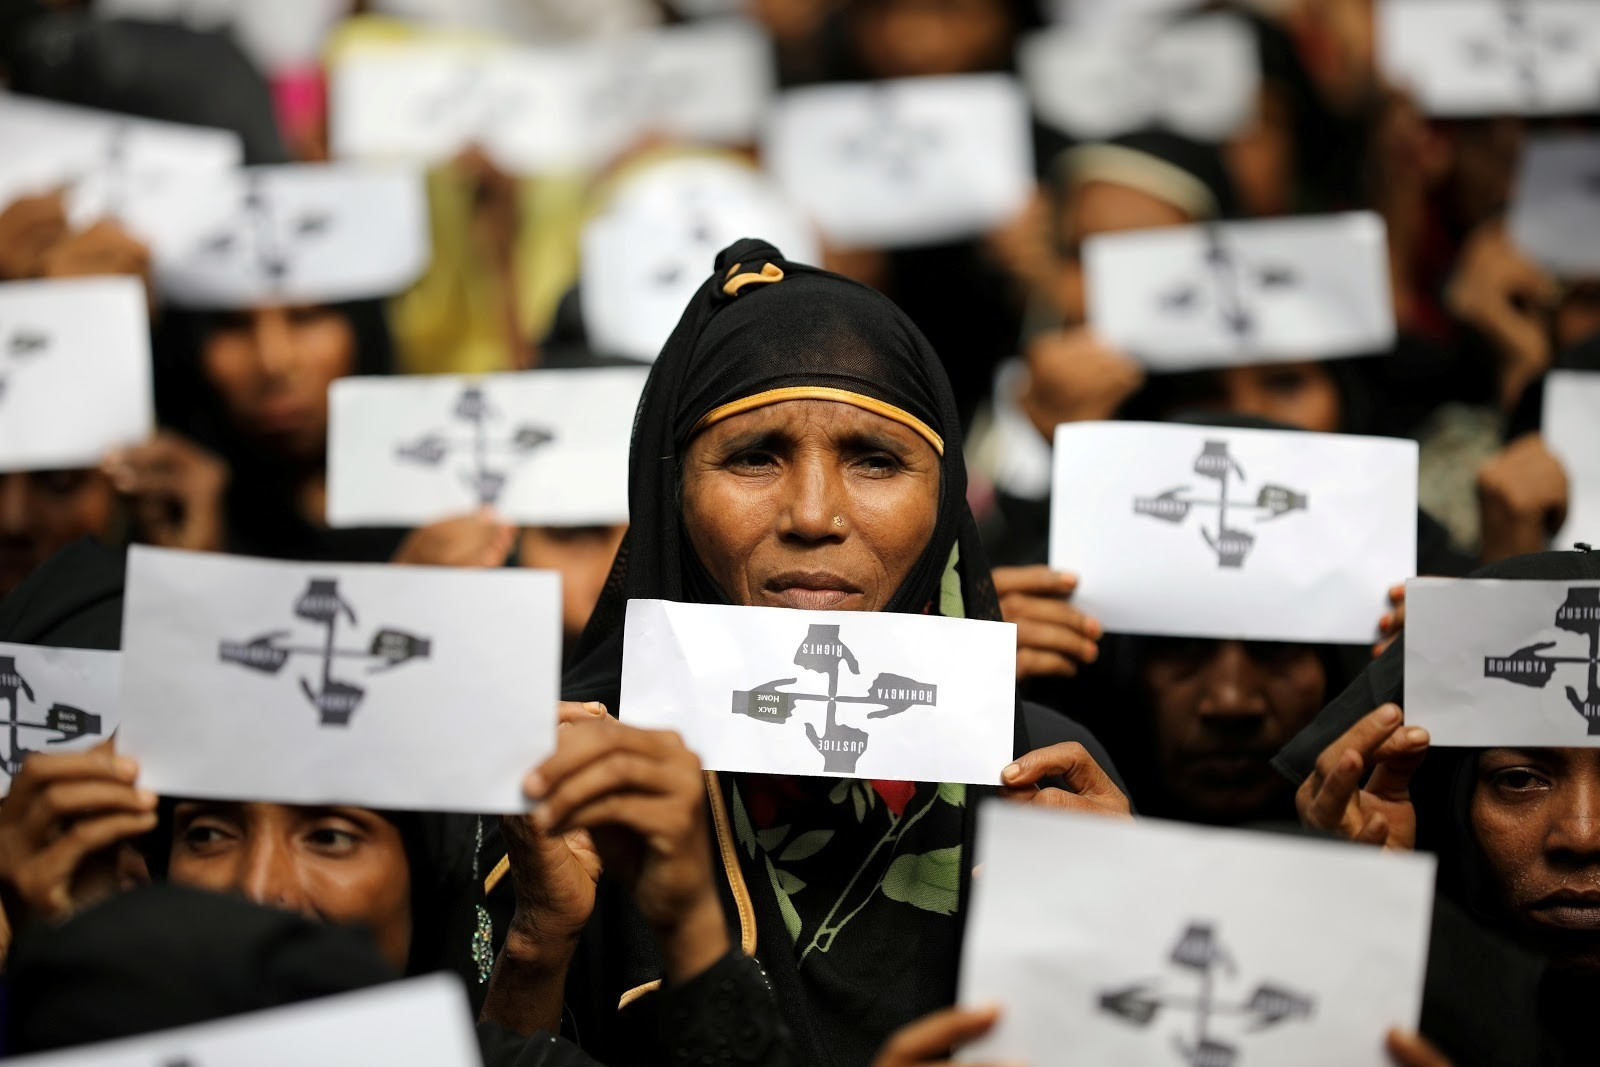 Rohingya refugee women hold placards as they take part in a protest at the Kutupalong refugee camp to mark the one-year anniversary of their exodus in Cox's Bazar, Bangladesh, August 25, 2018. REUTERS/Mohammad Ponir Hossain TPX IMAGES OF THE DAY - RC1FD0799CD0